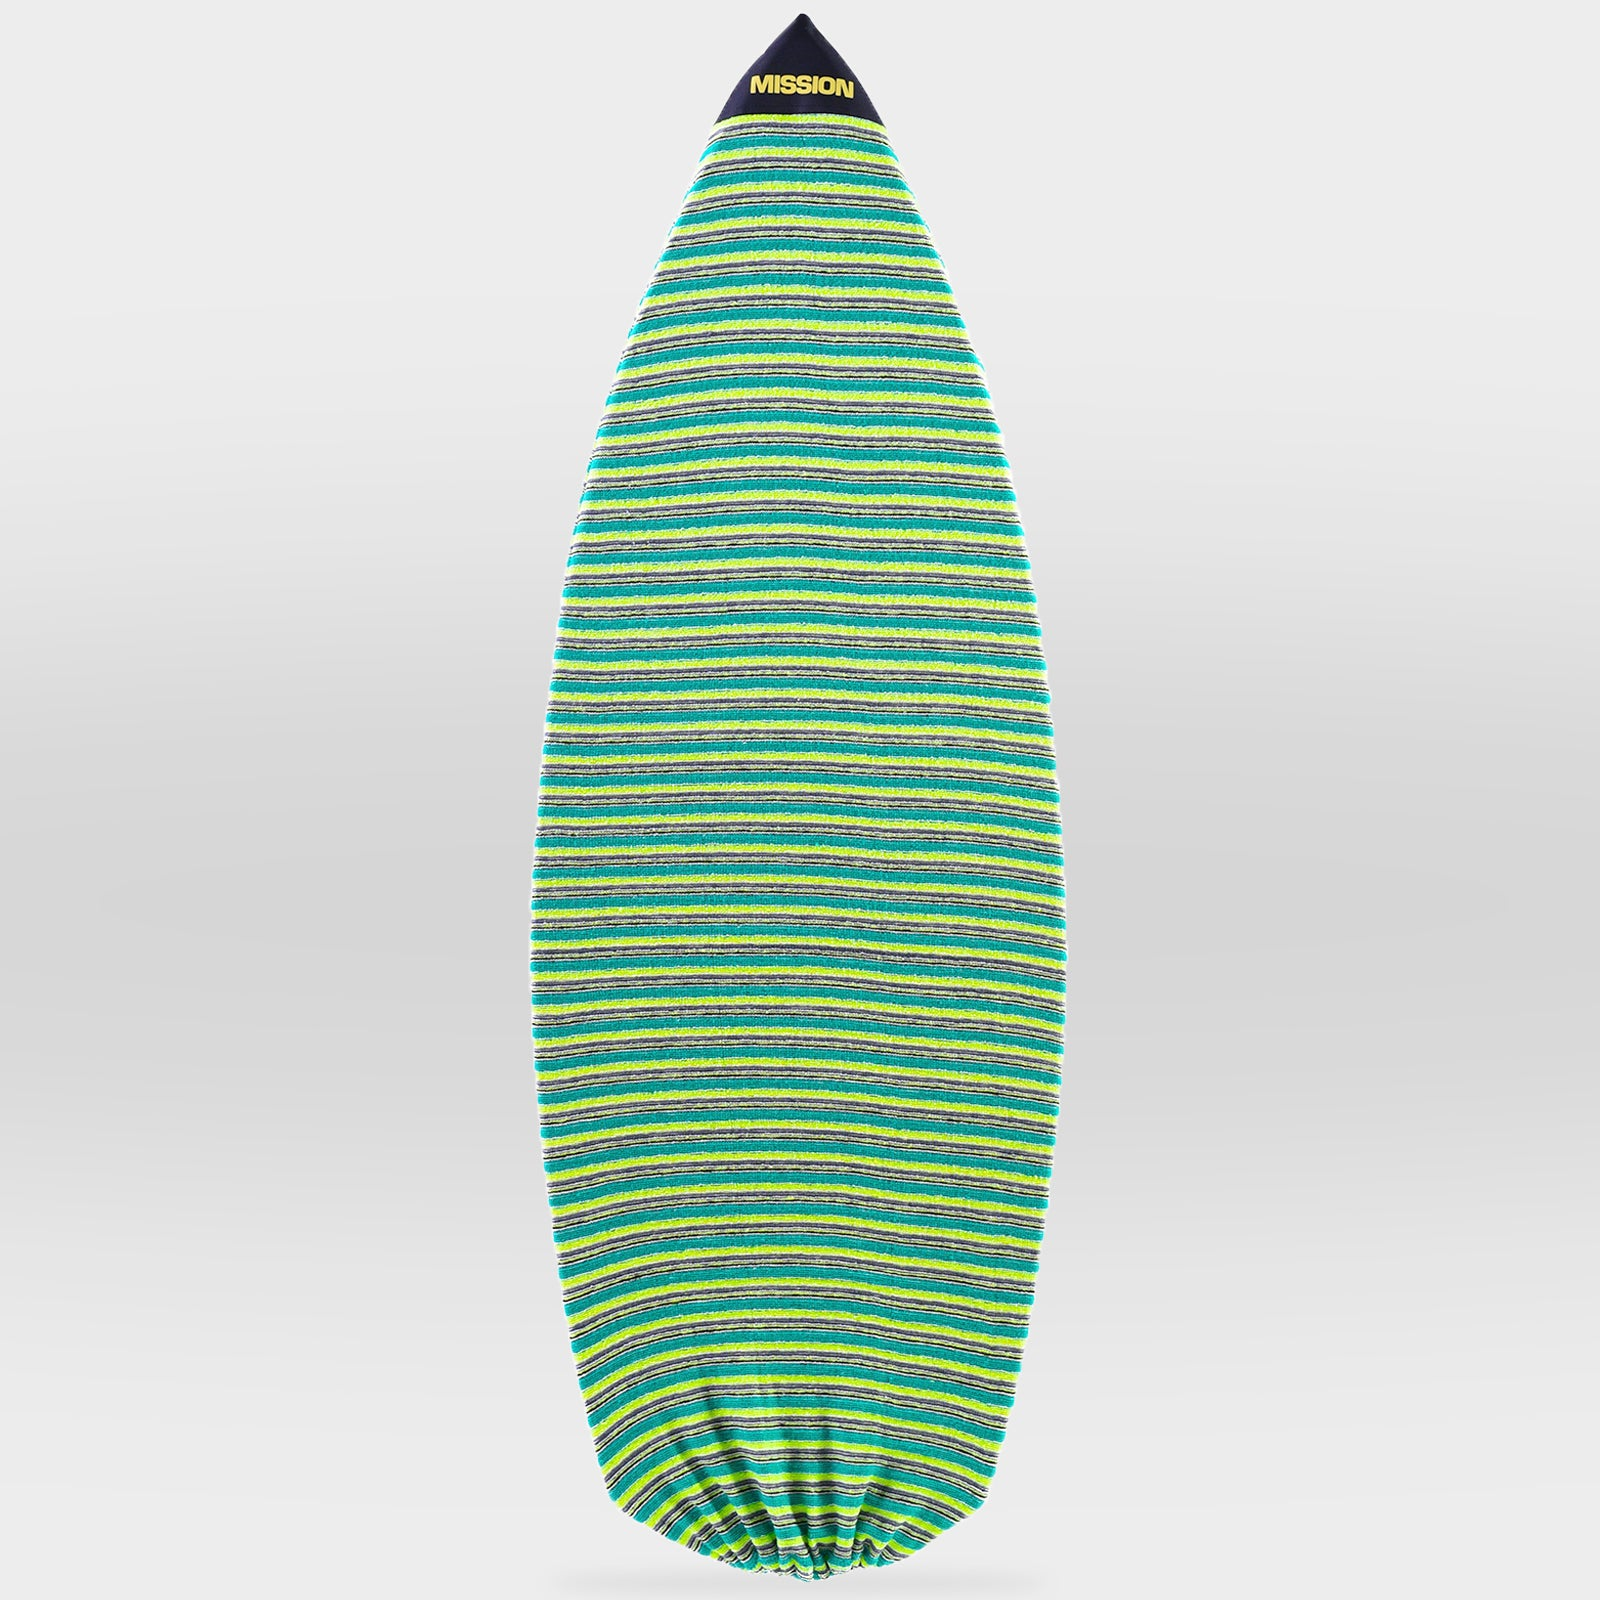 Green Classic Point Nose MISSION Wakesurf Board Sock